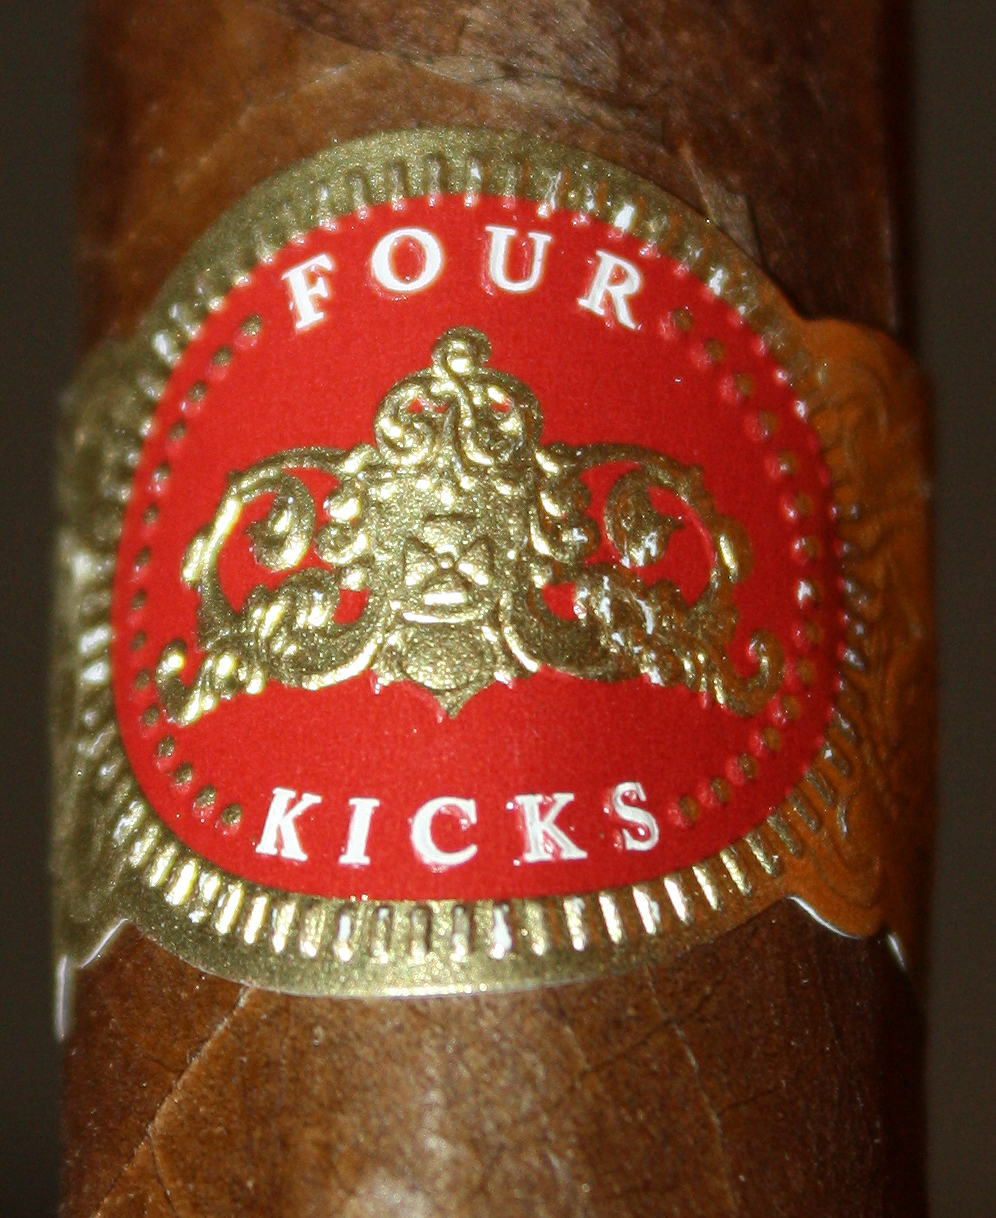 Four Kicks – Cigar Review & Contest